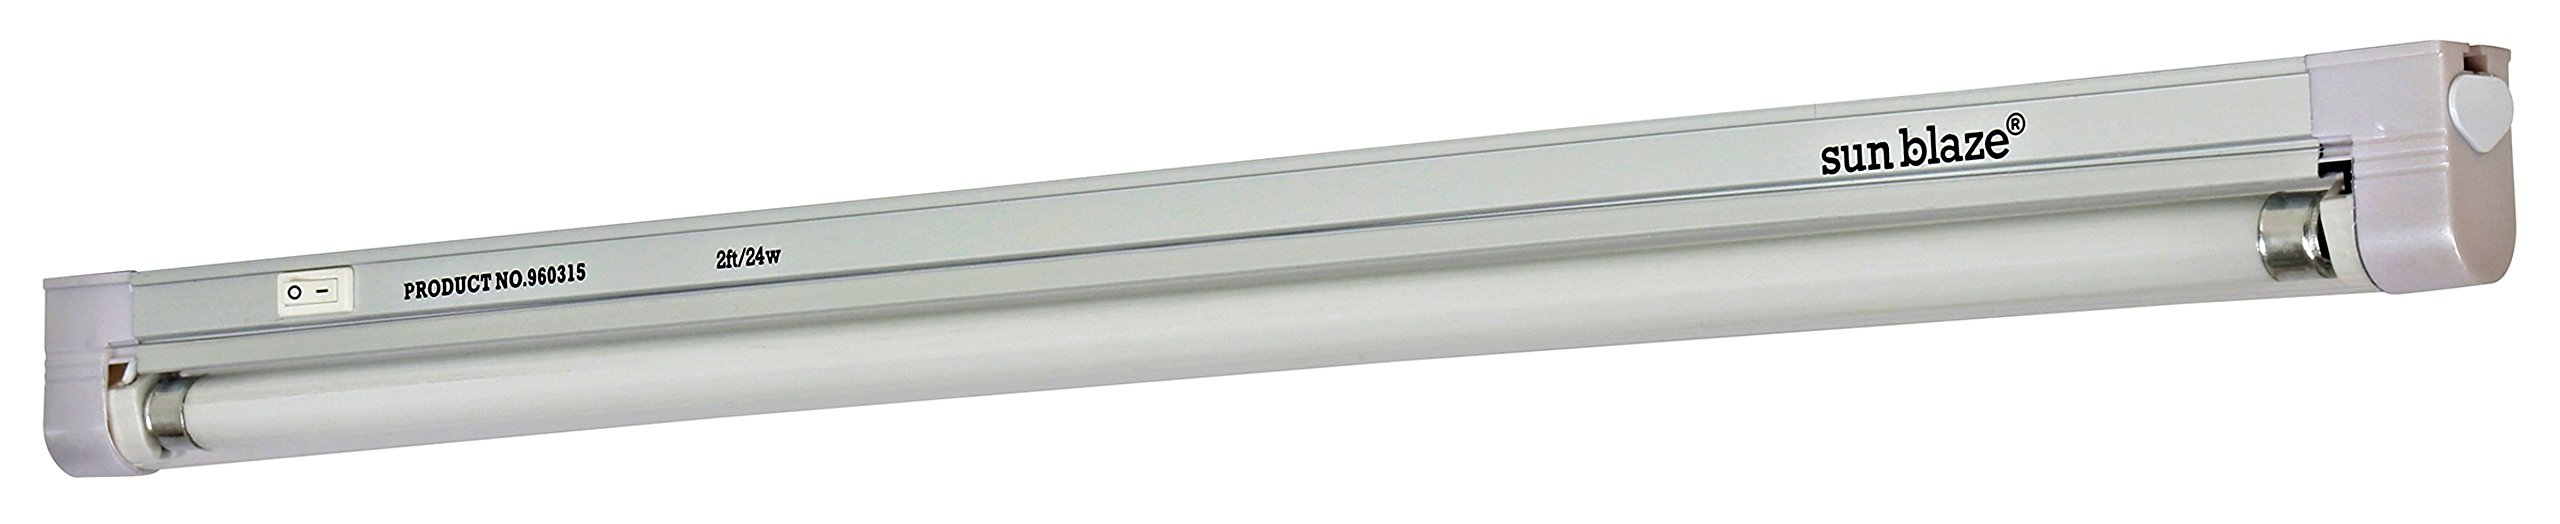 Sun Blaze T5 Fluorescent - 2 ft. Fixture | 1 Lamp | 120V - Indoor Grow Light Fixture for Hydroponic and Greenhouse Use